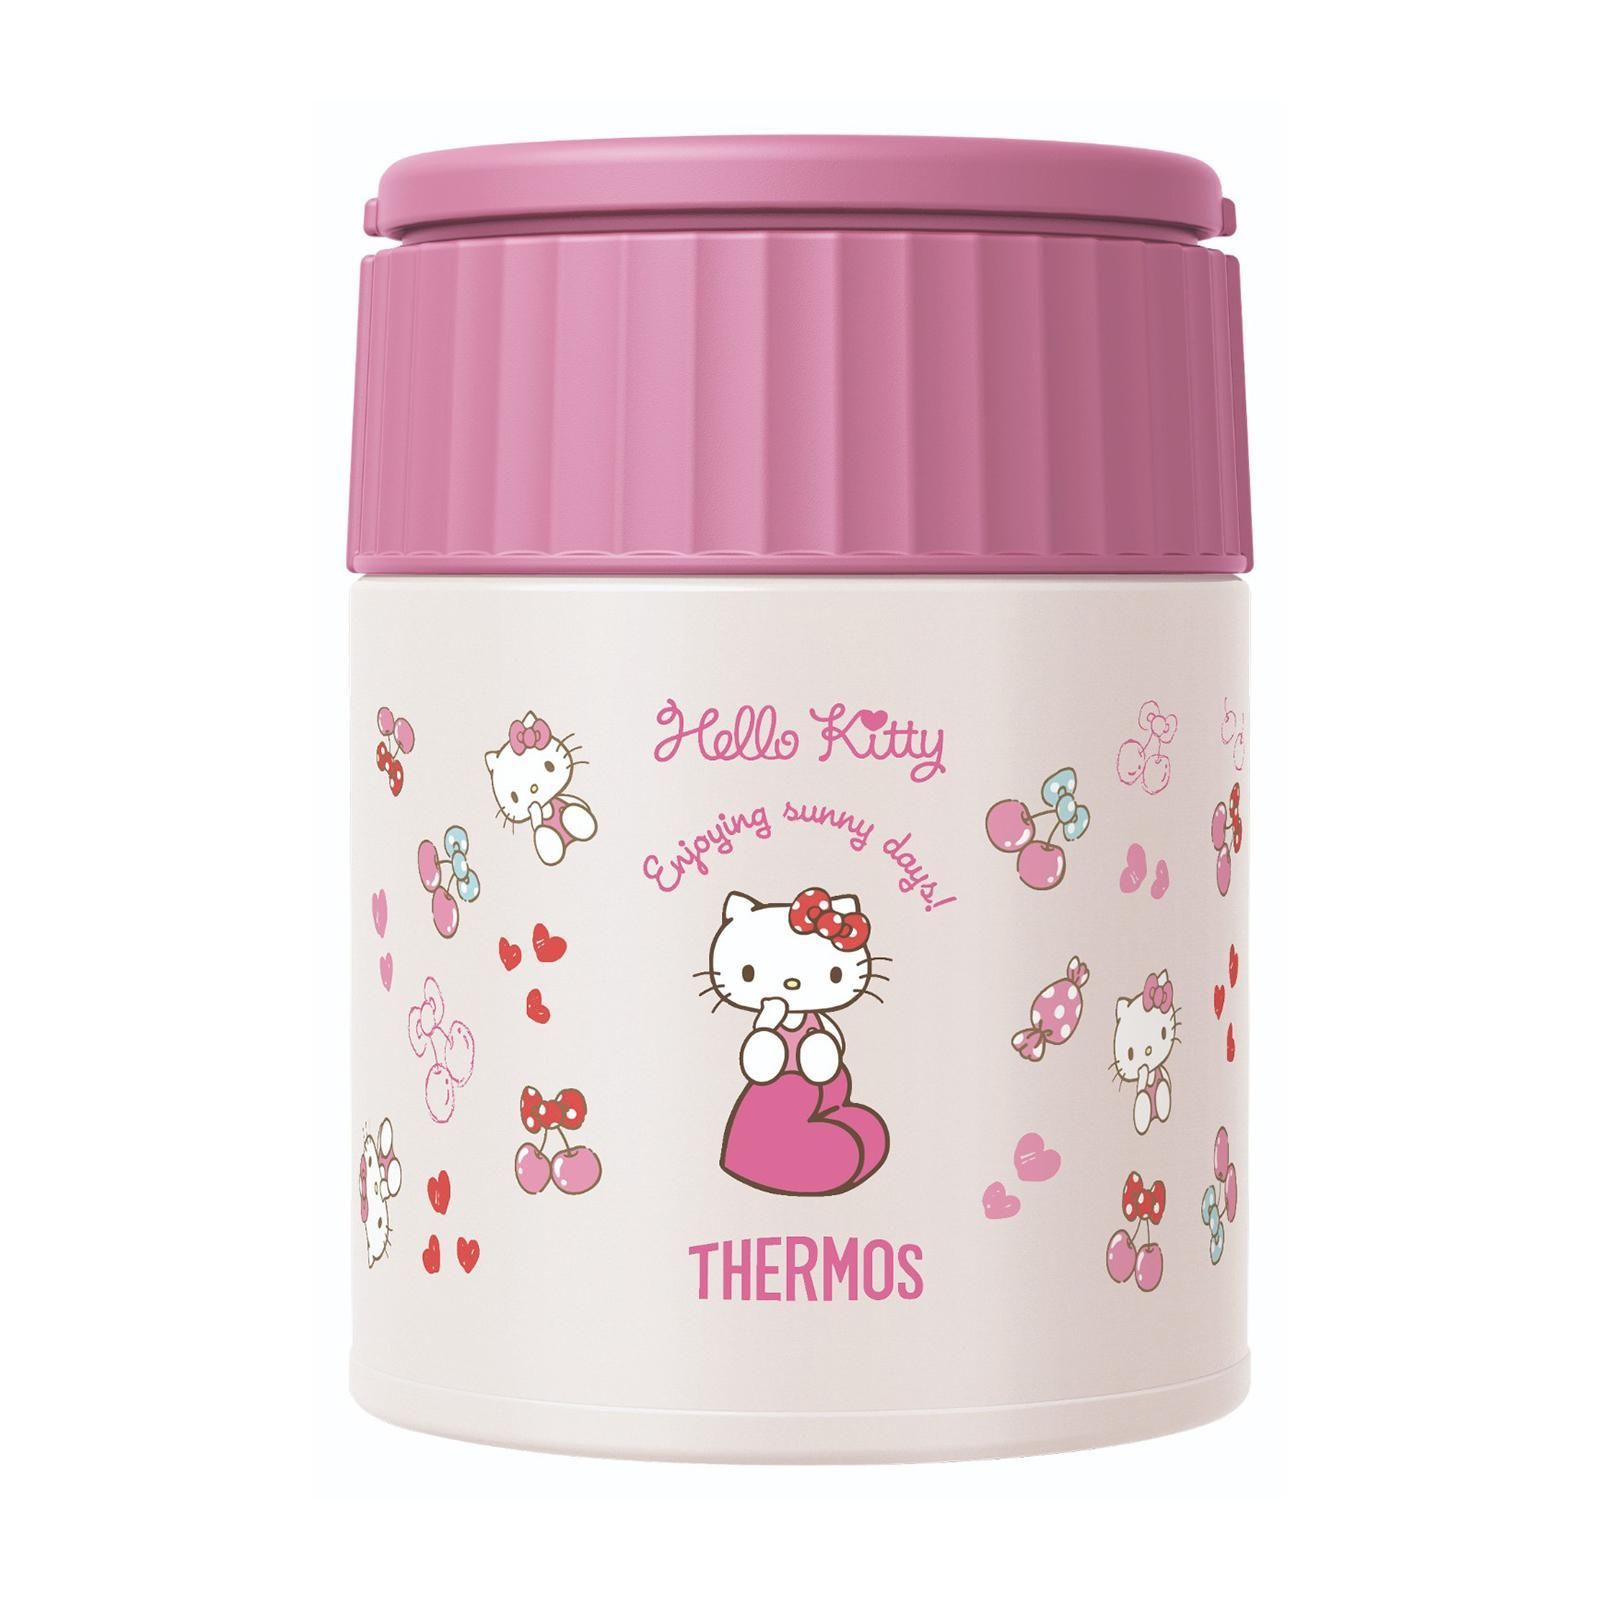 Thermos Jbq-400Hks Sanrio Hello Kitty Food Jar - Stainless Steel Vacuum Insulated